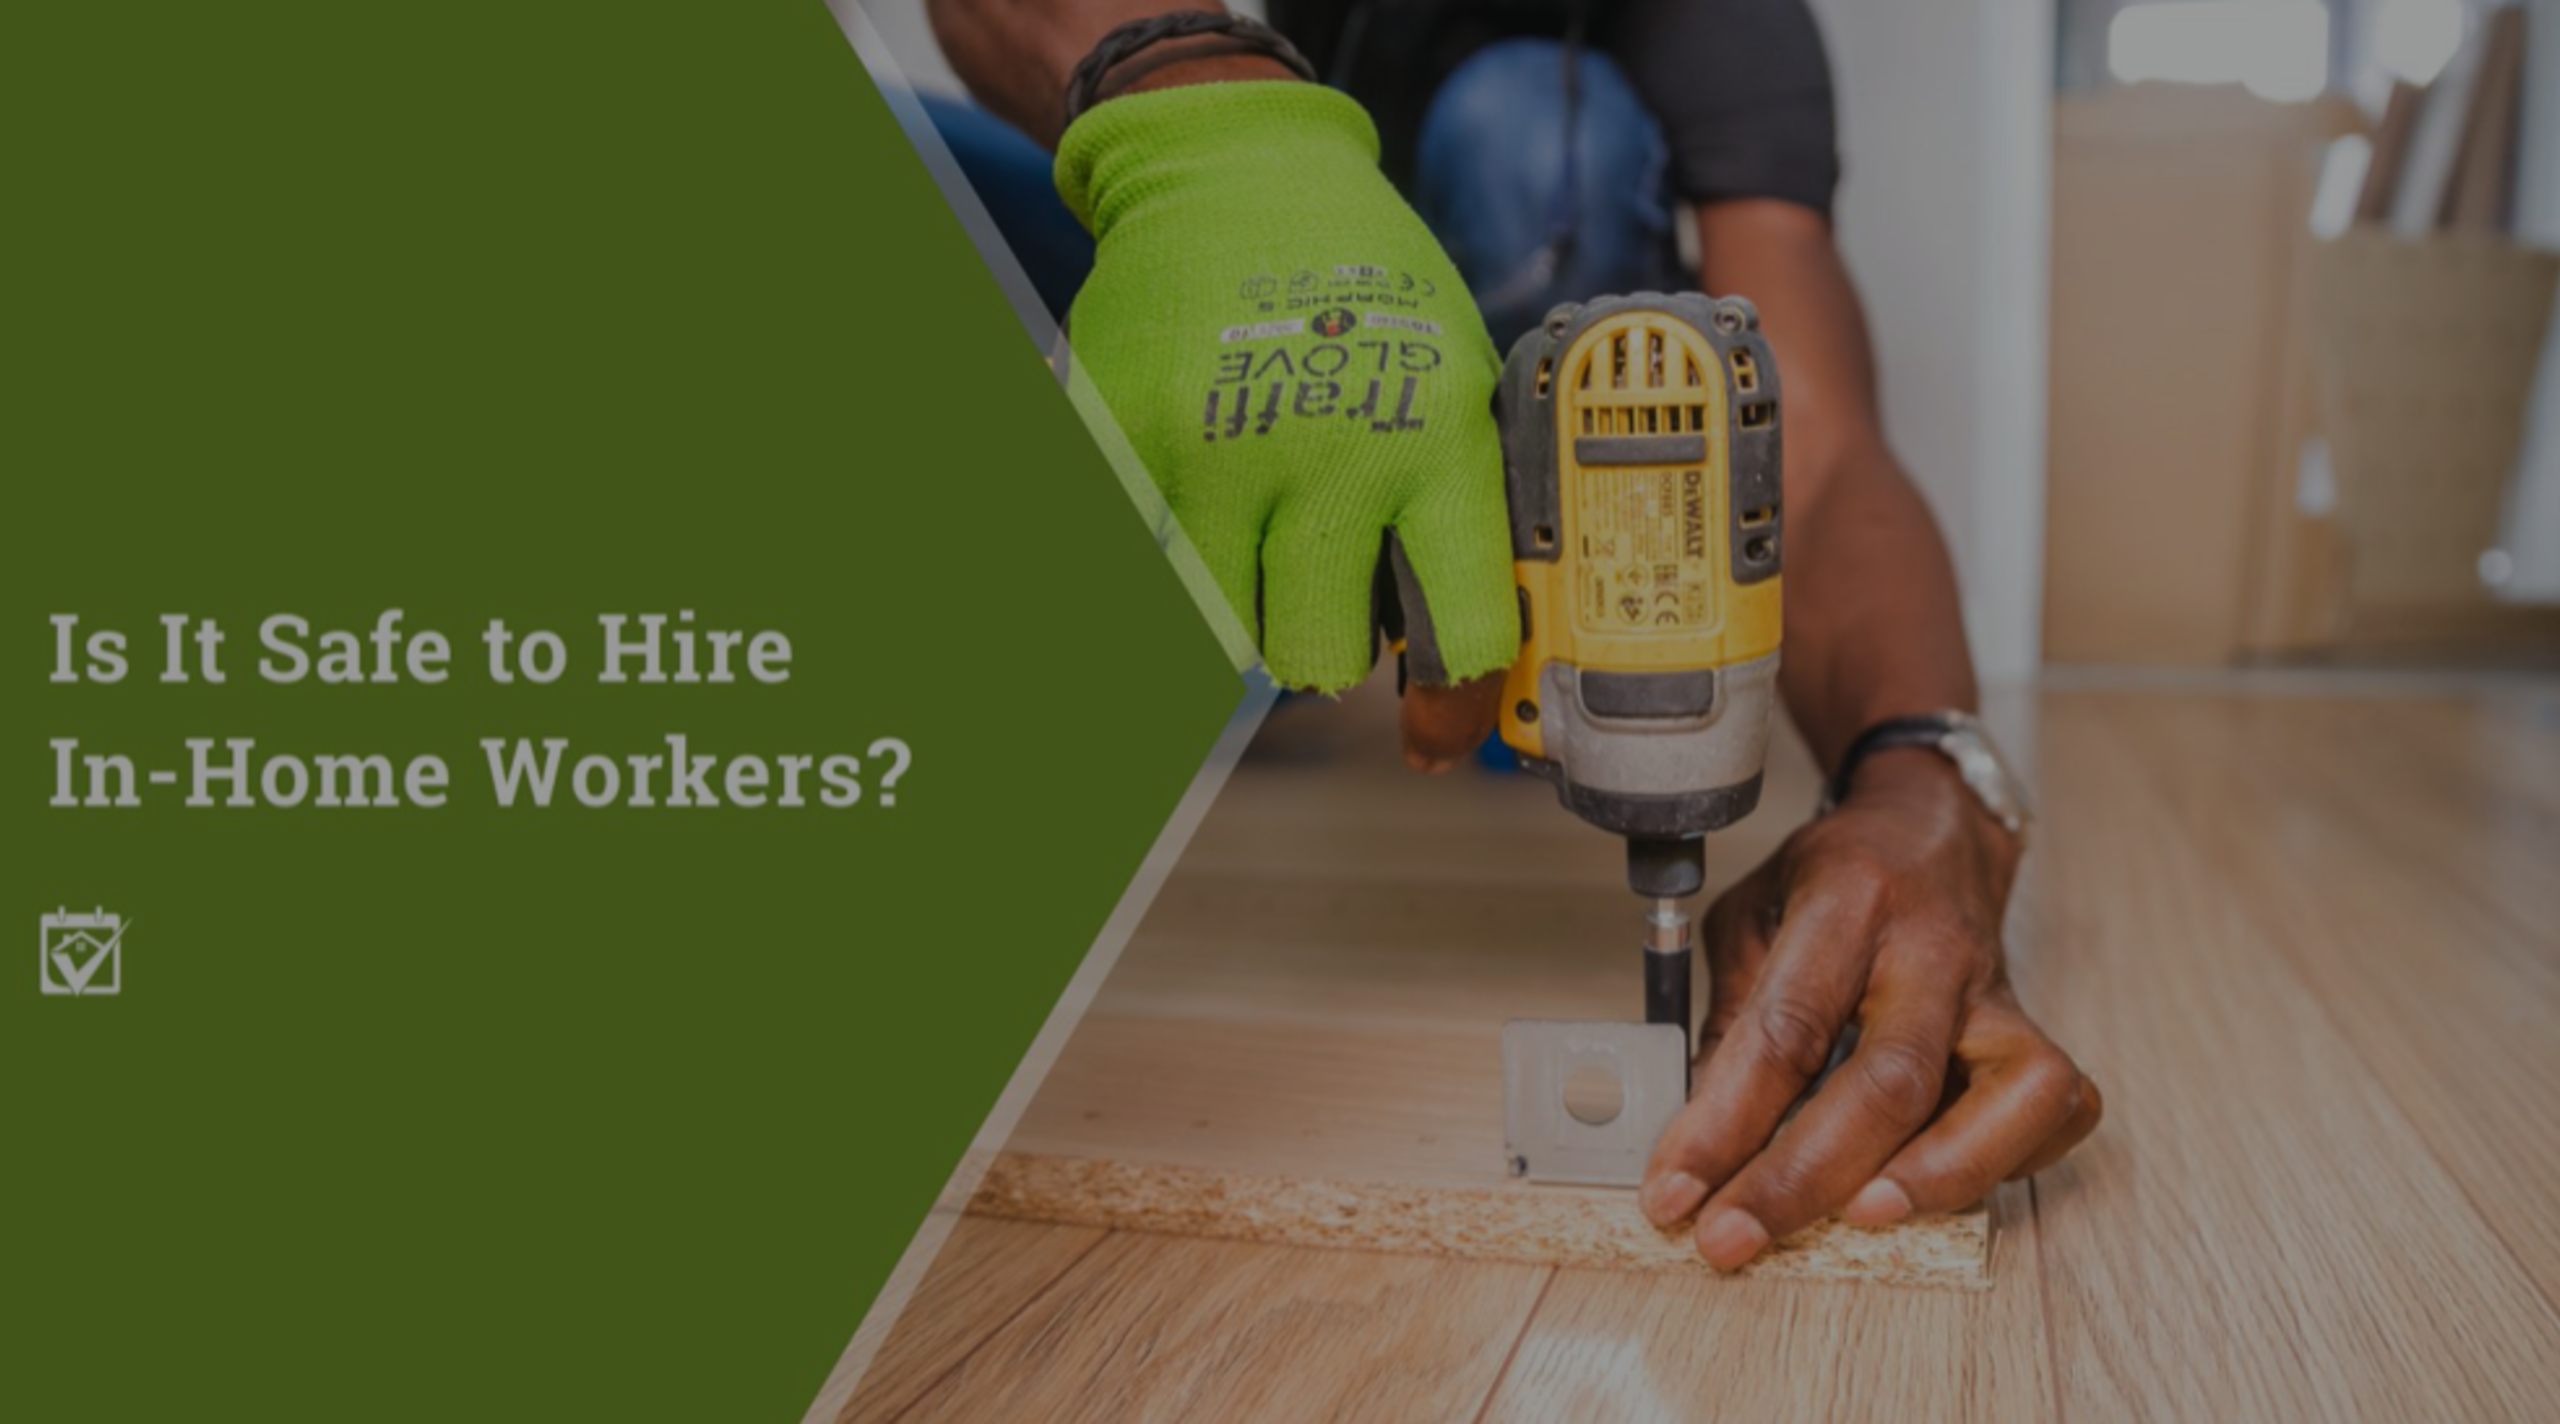 Is Hiring a Contractor in Your Home Safe?